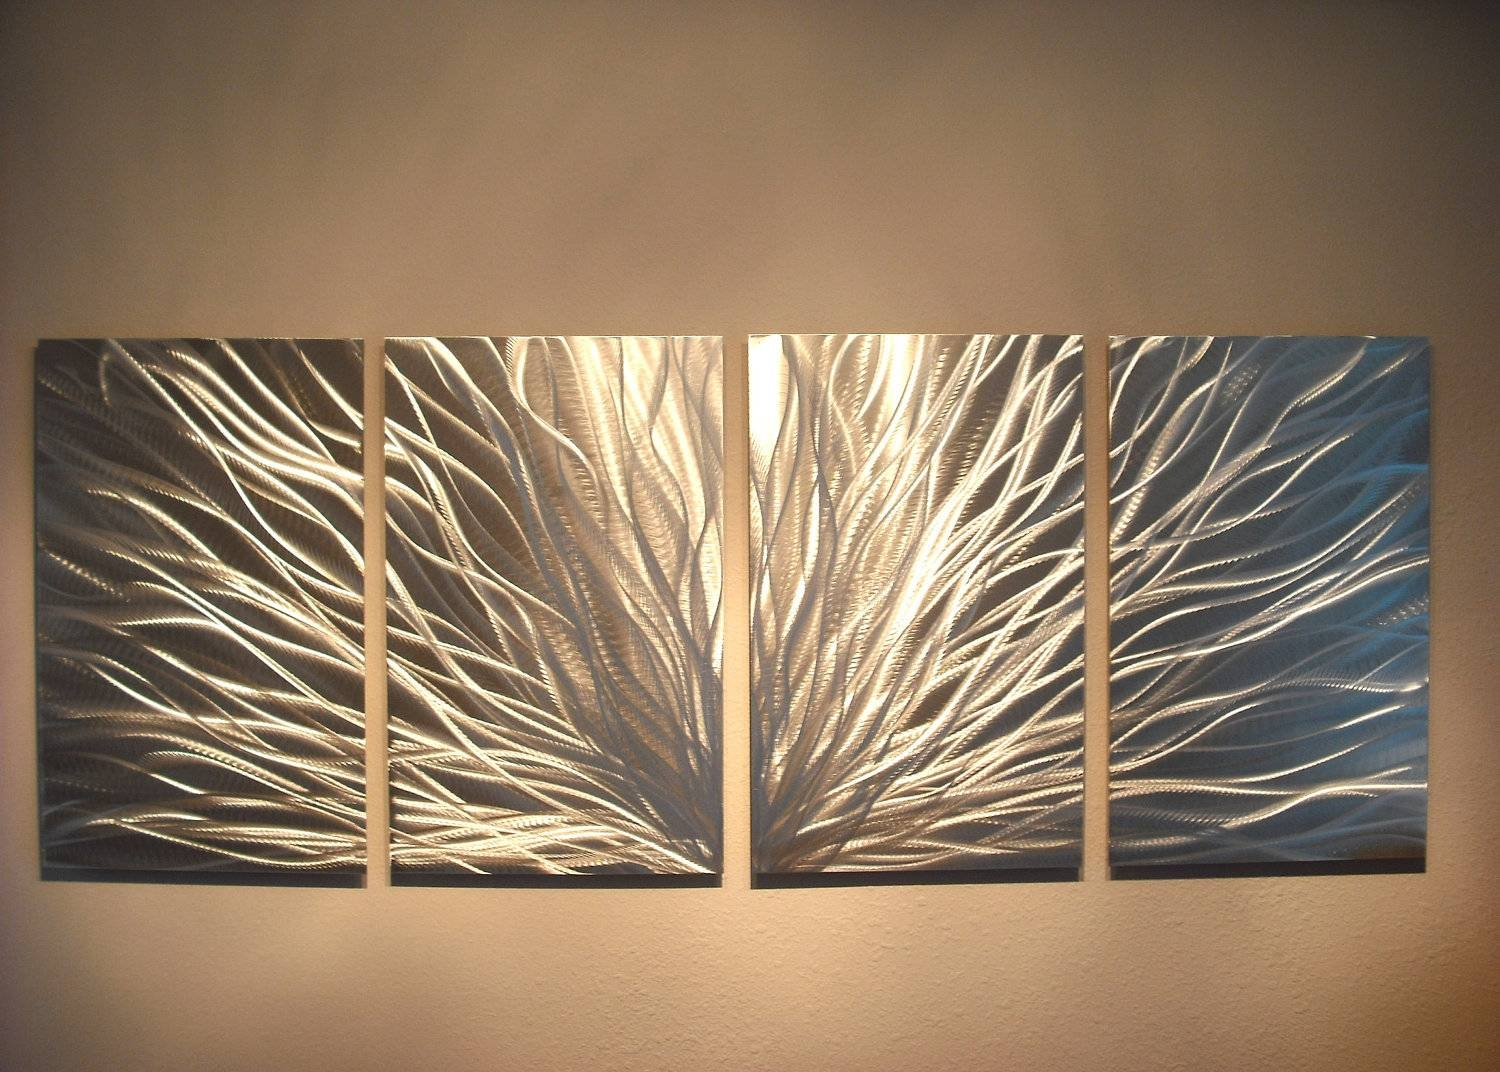 Radiance – Abstract Metal Wall Art Contemporary Modern Decor Pertaining To Newest Abstract Metal Wall Art Sculptures (View 14 of 20)